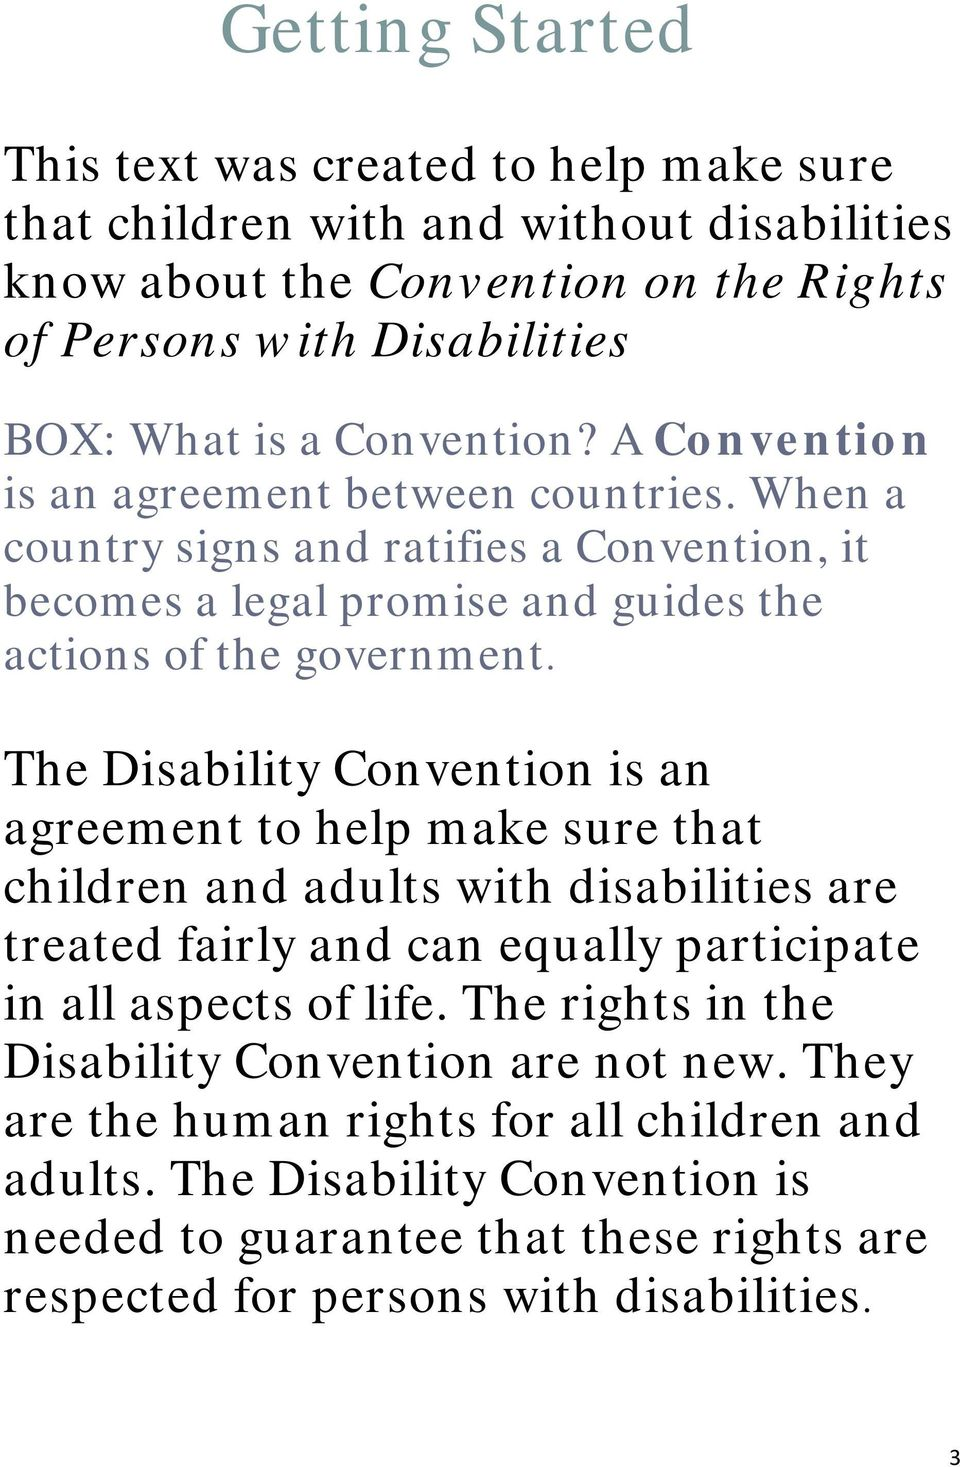 The Disability Convention is an agreement to help make sure that children and adults with disabilities are treated fairly and can equally participate in all aspects of life.